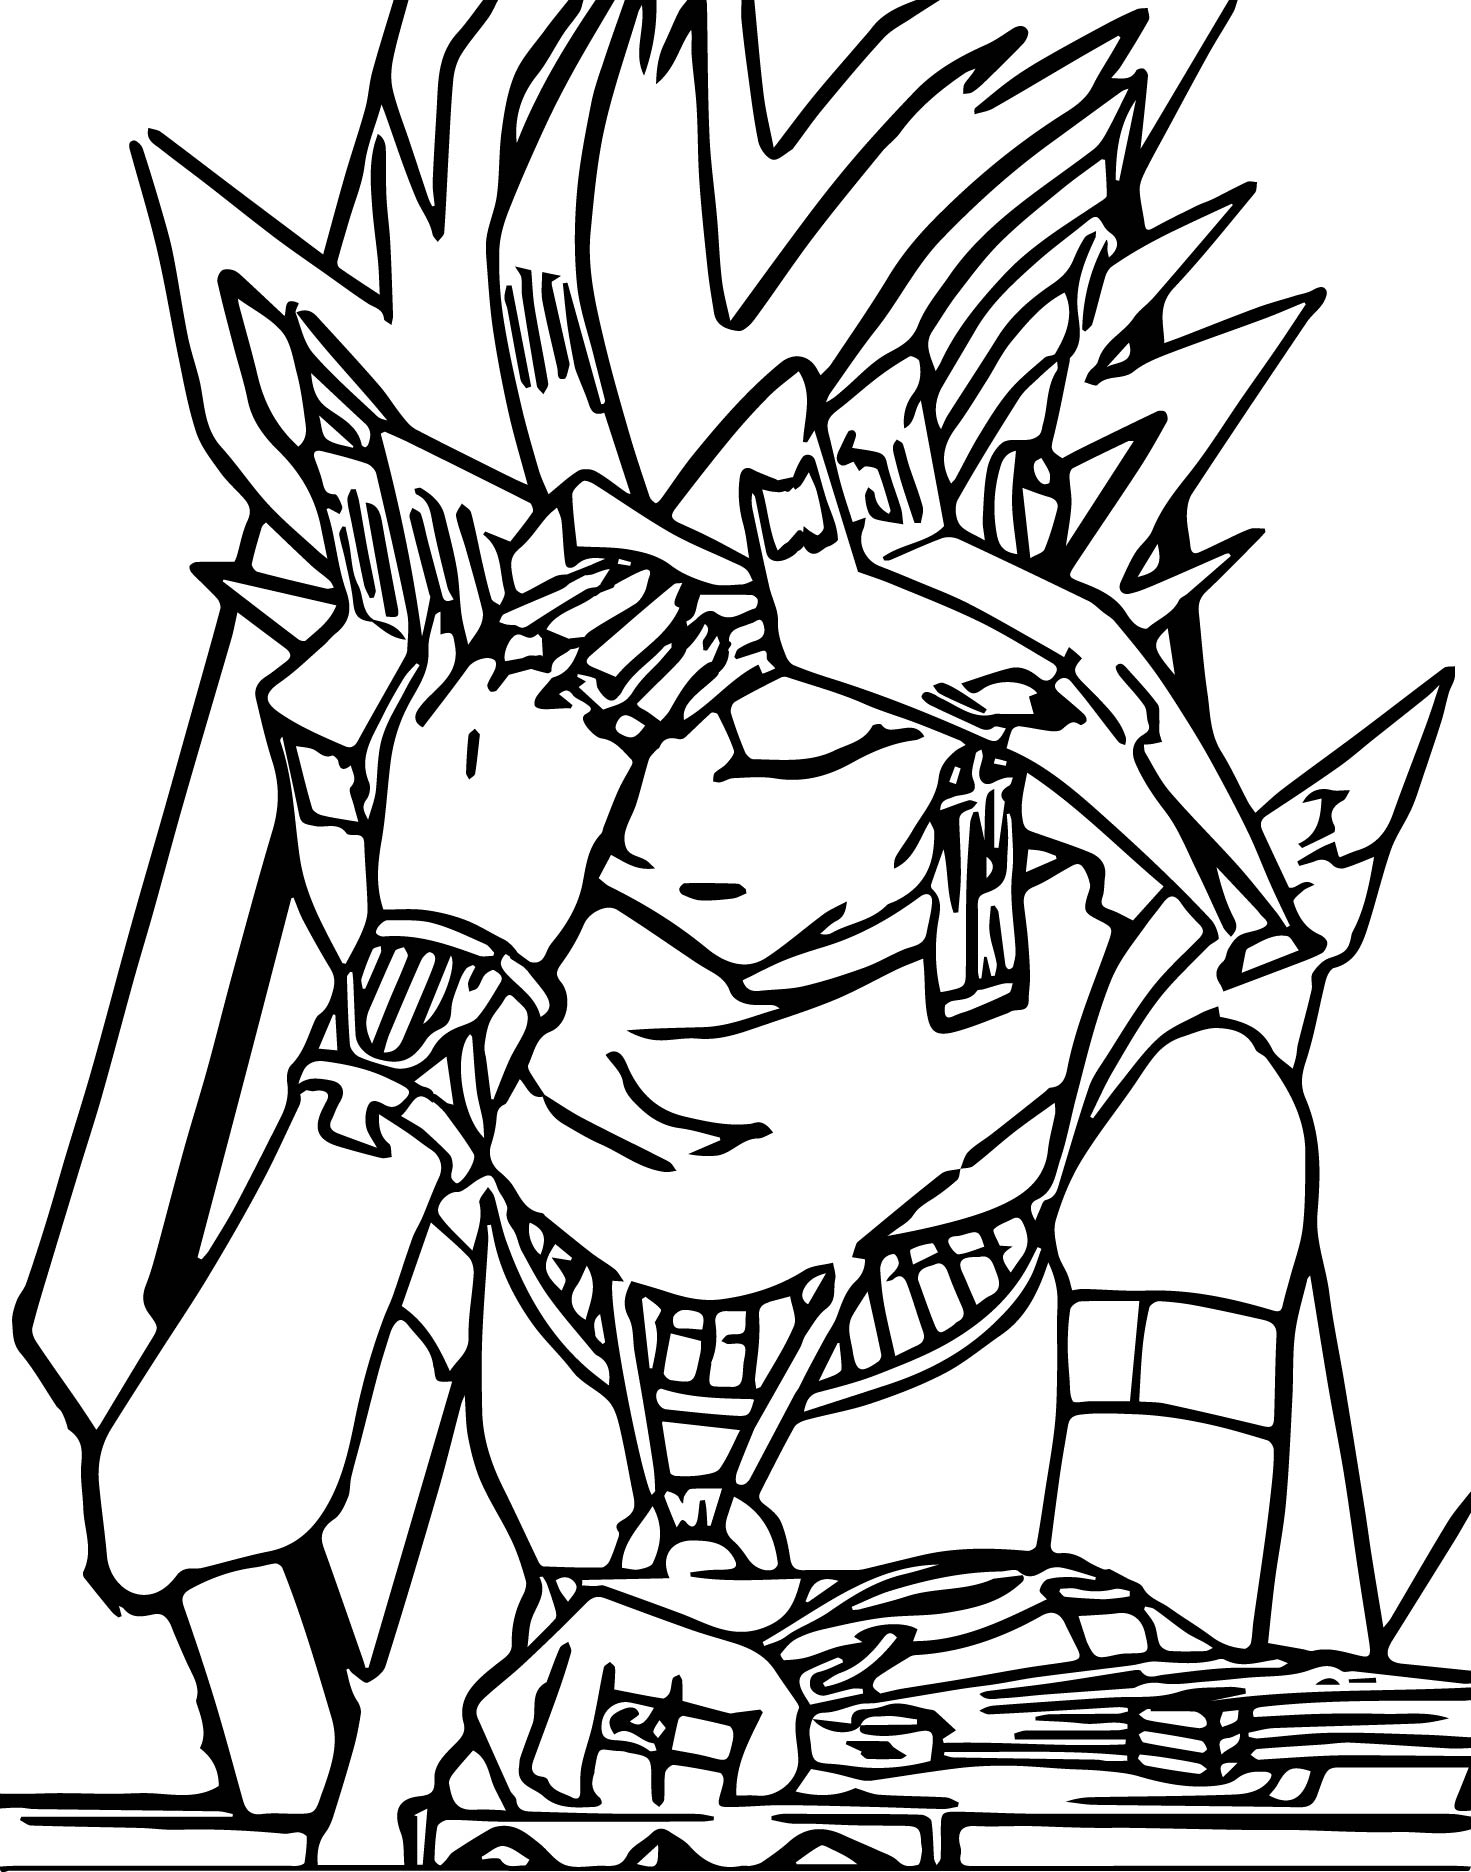 Yu Gi Oh No Coloring Page With Yugioh Coloring Pages Yugioh Coloring Page